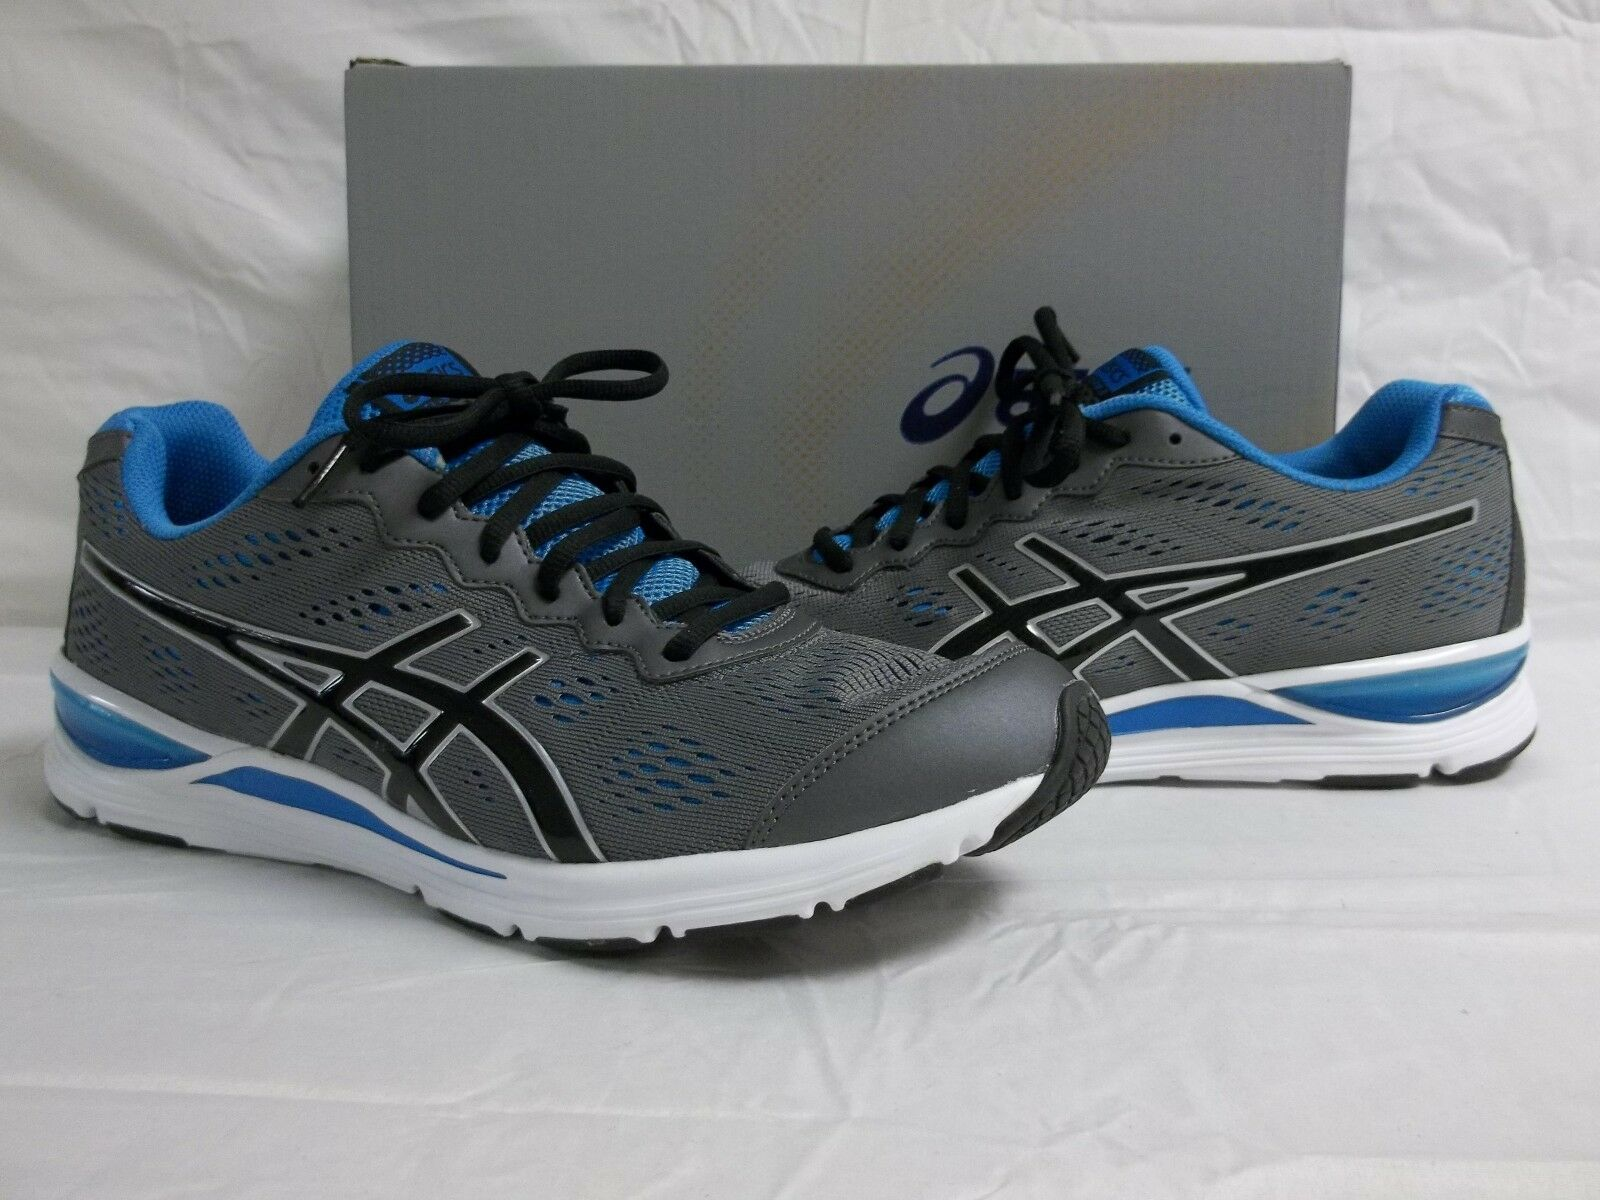 Asics Size 11.5 M GEL GEL GEL STORM 2 Granite Black Athletic Sneakers New Mens shoes 8dca5c